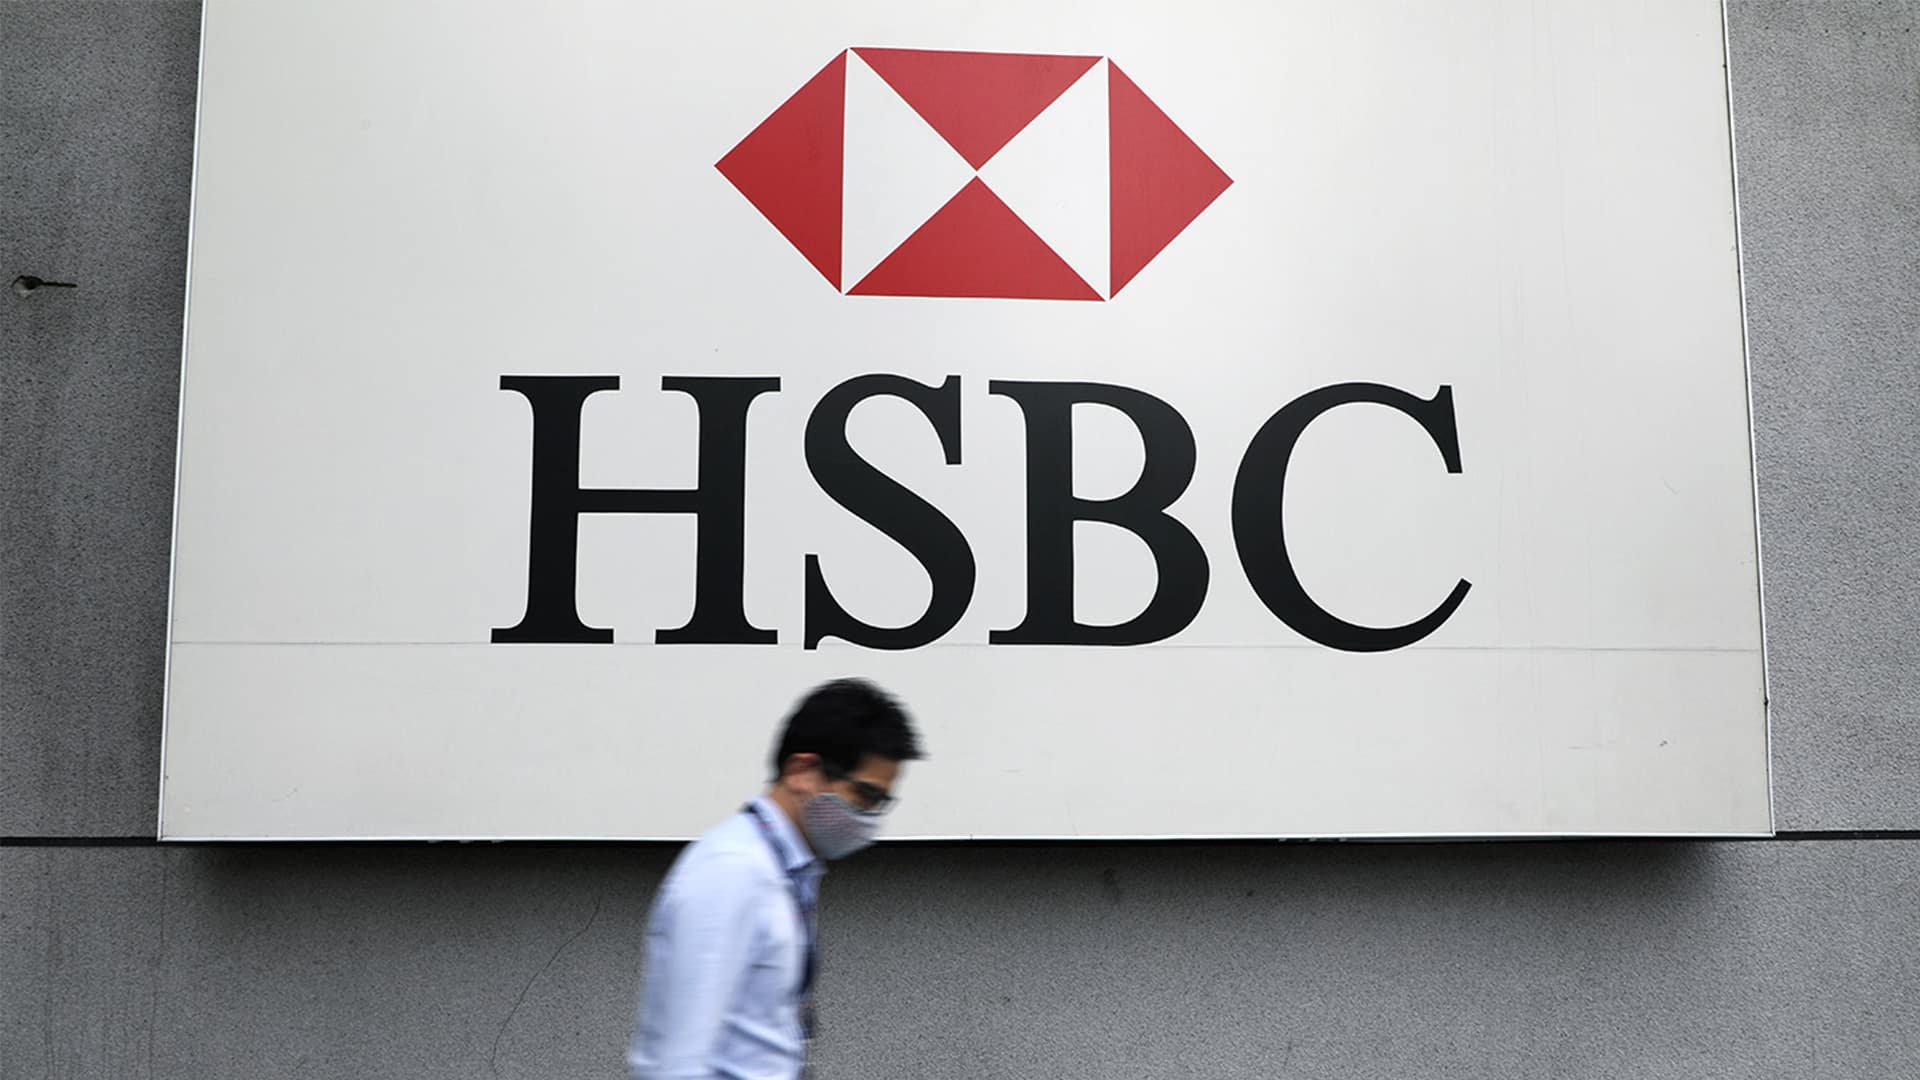 HSBC handled $4.4B in suspicious money: ICIJ investigation